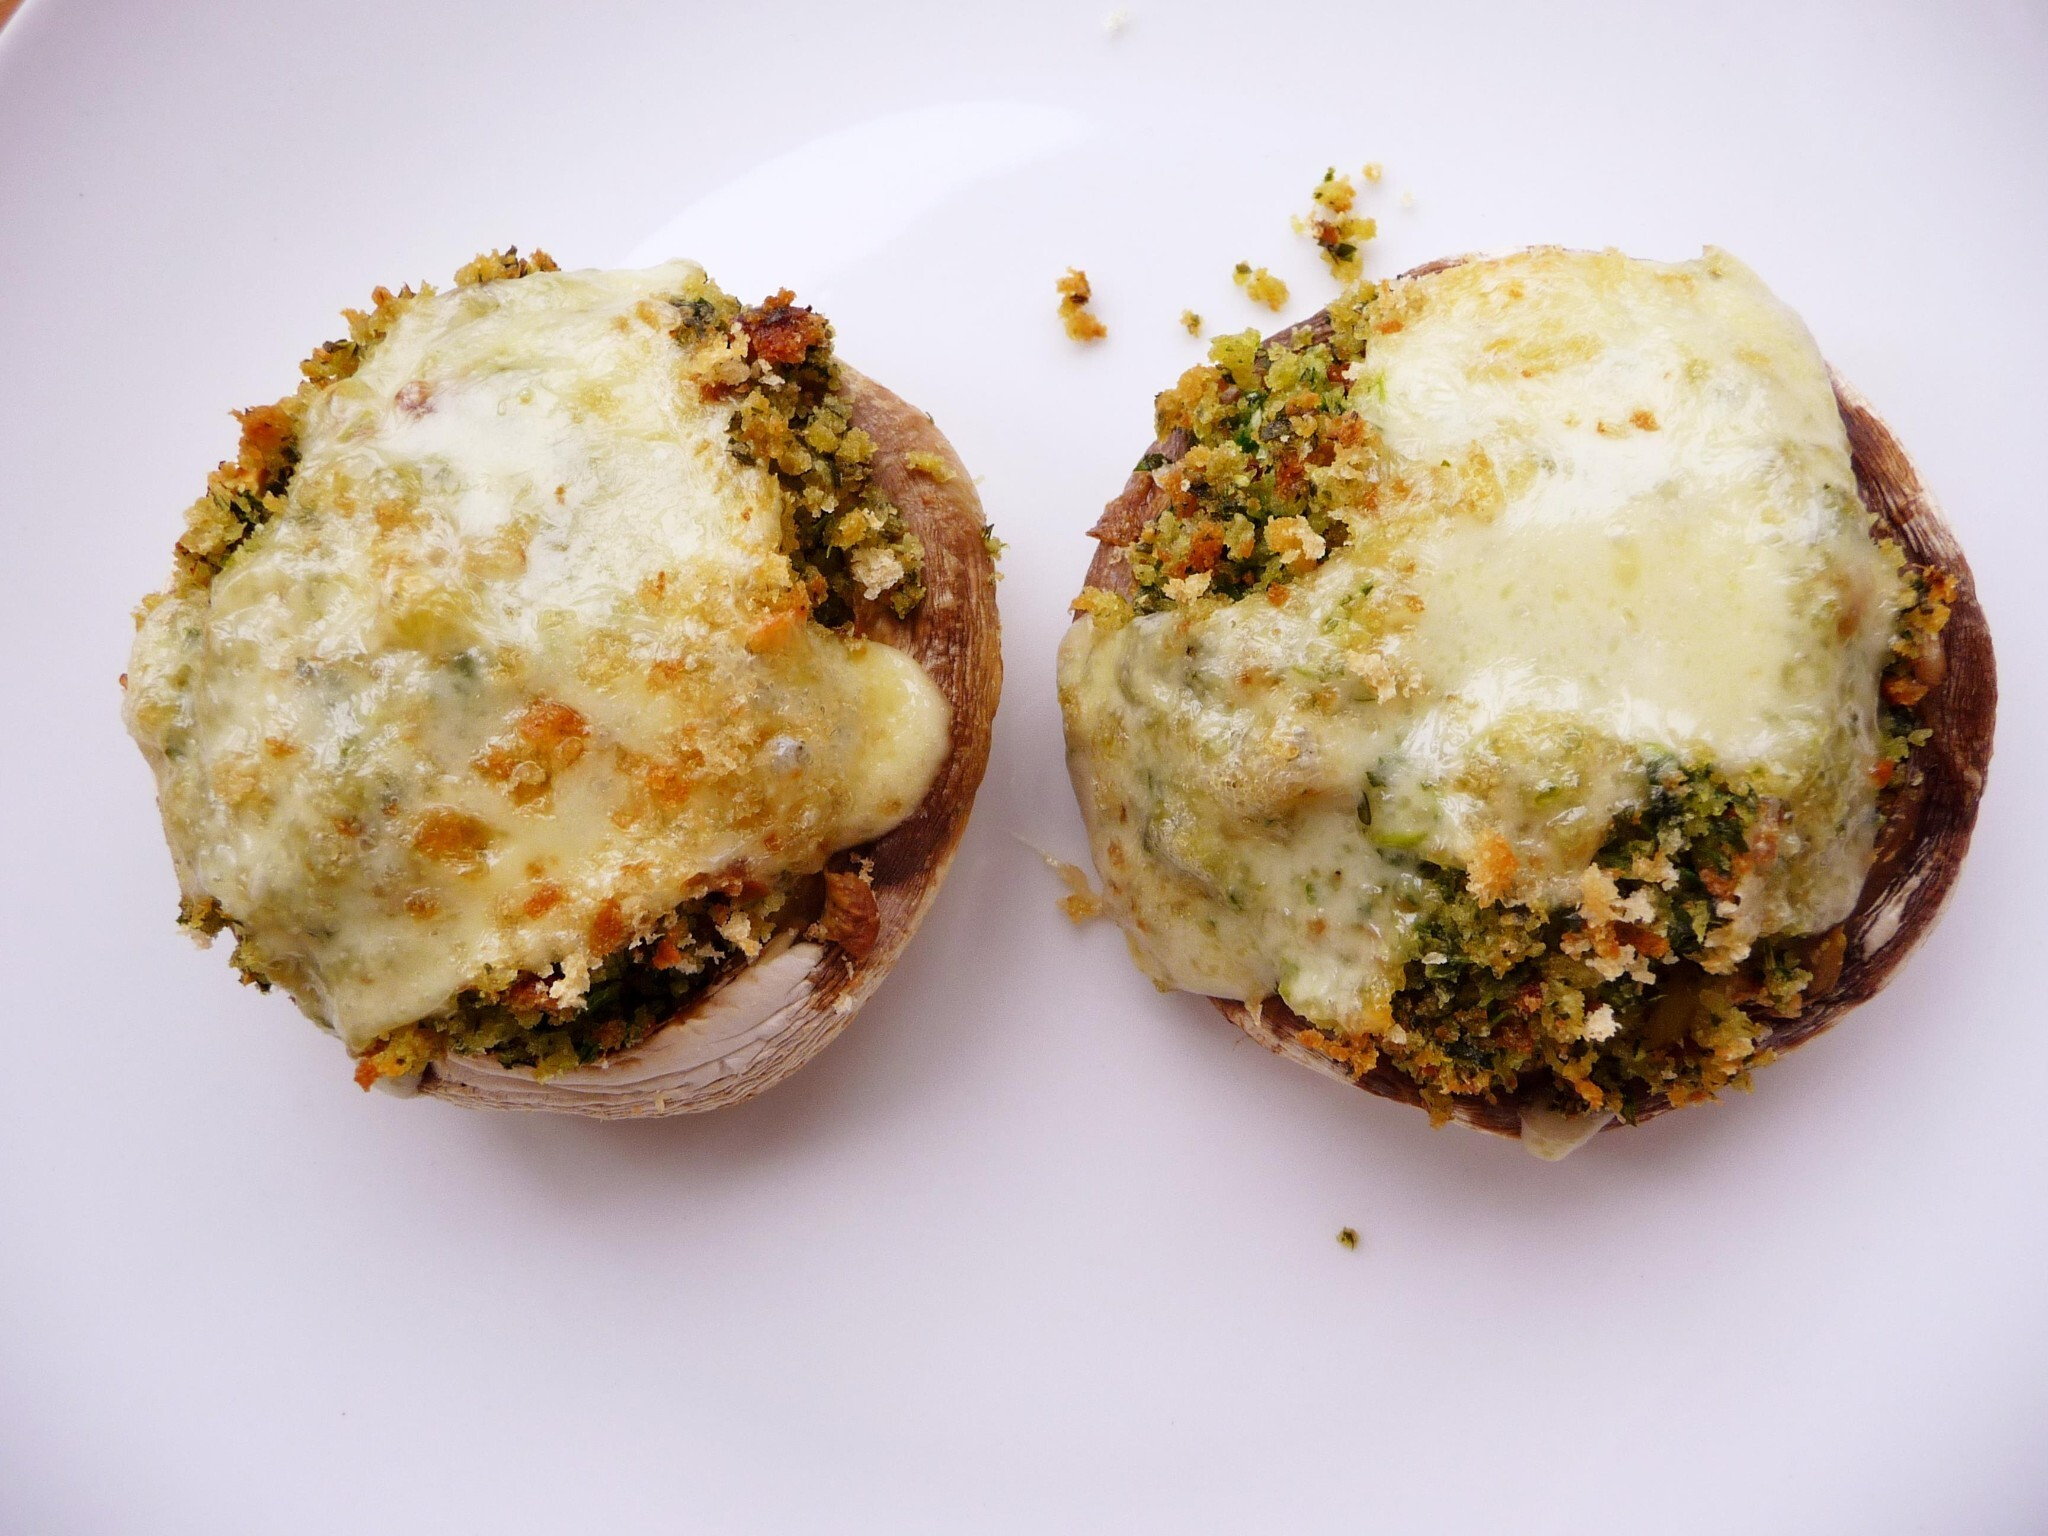 Rocket Pesto stuffed mushrooms